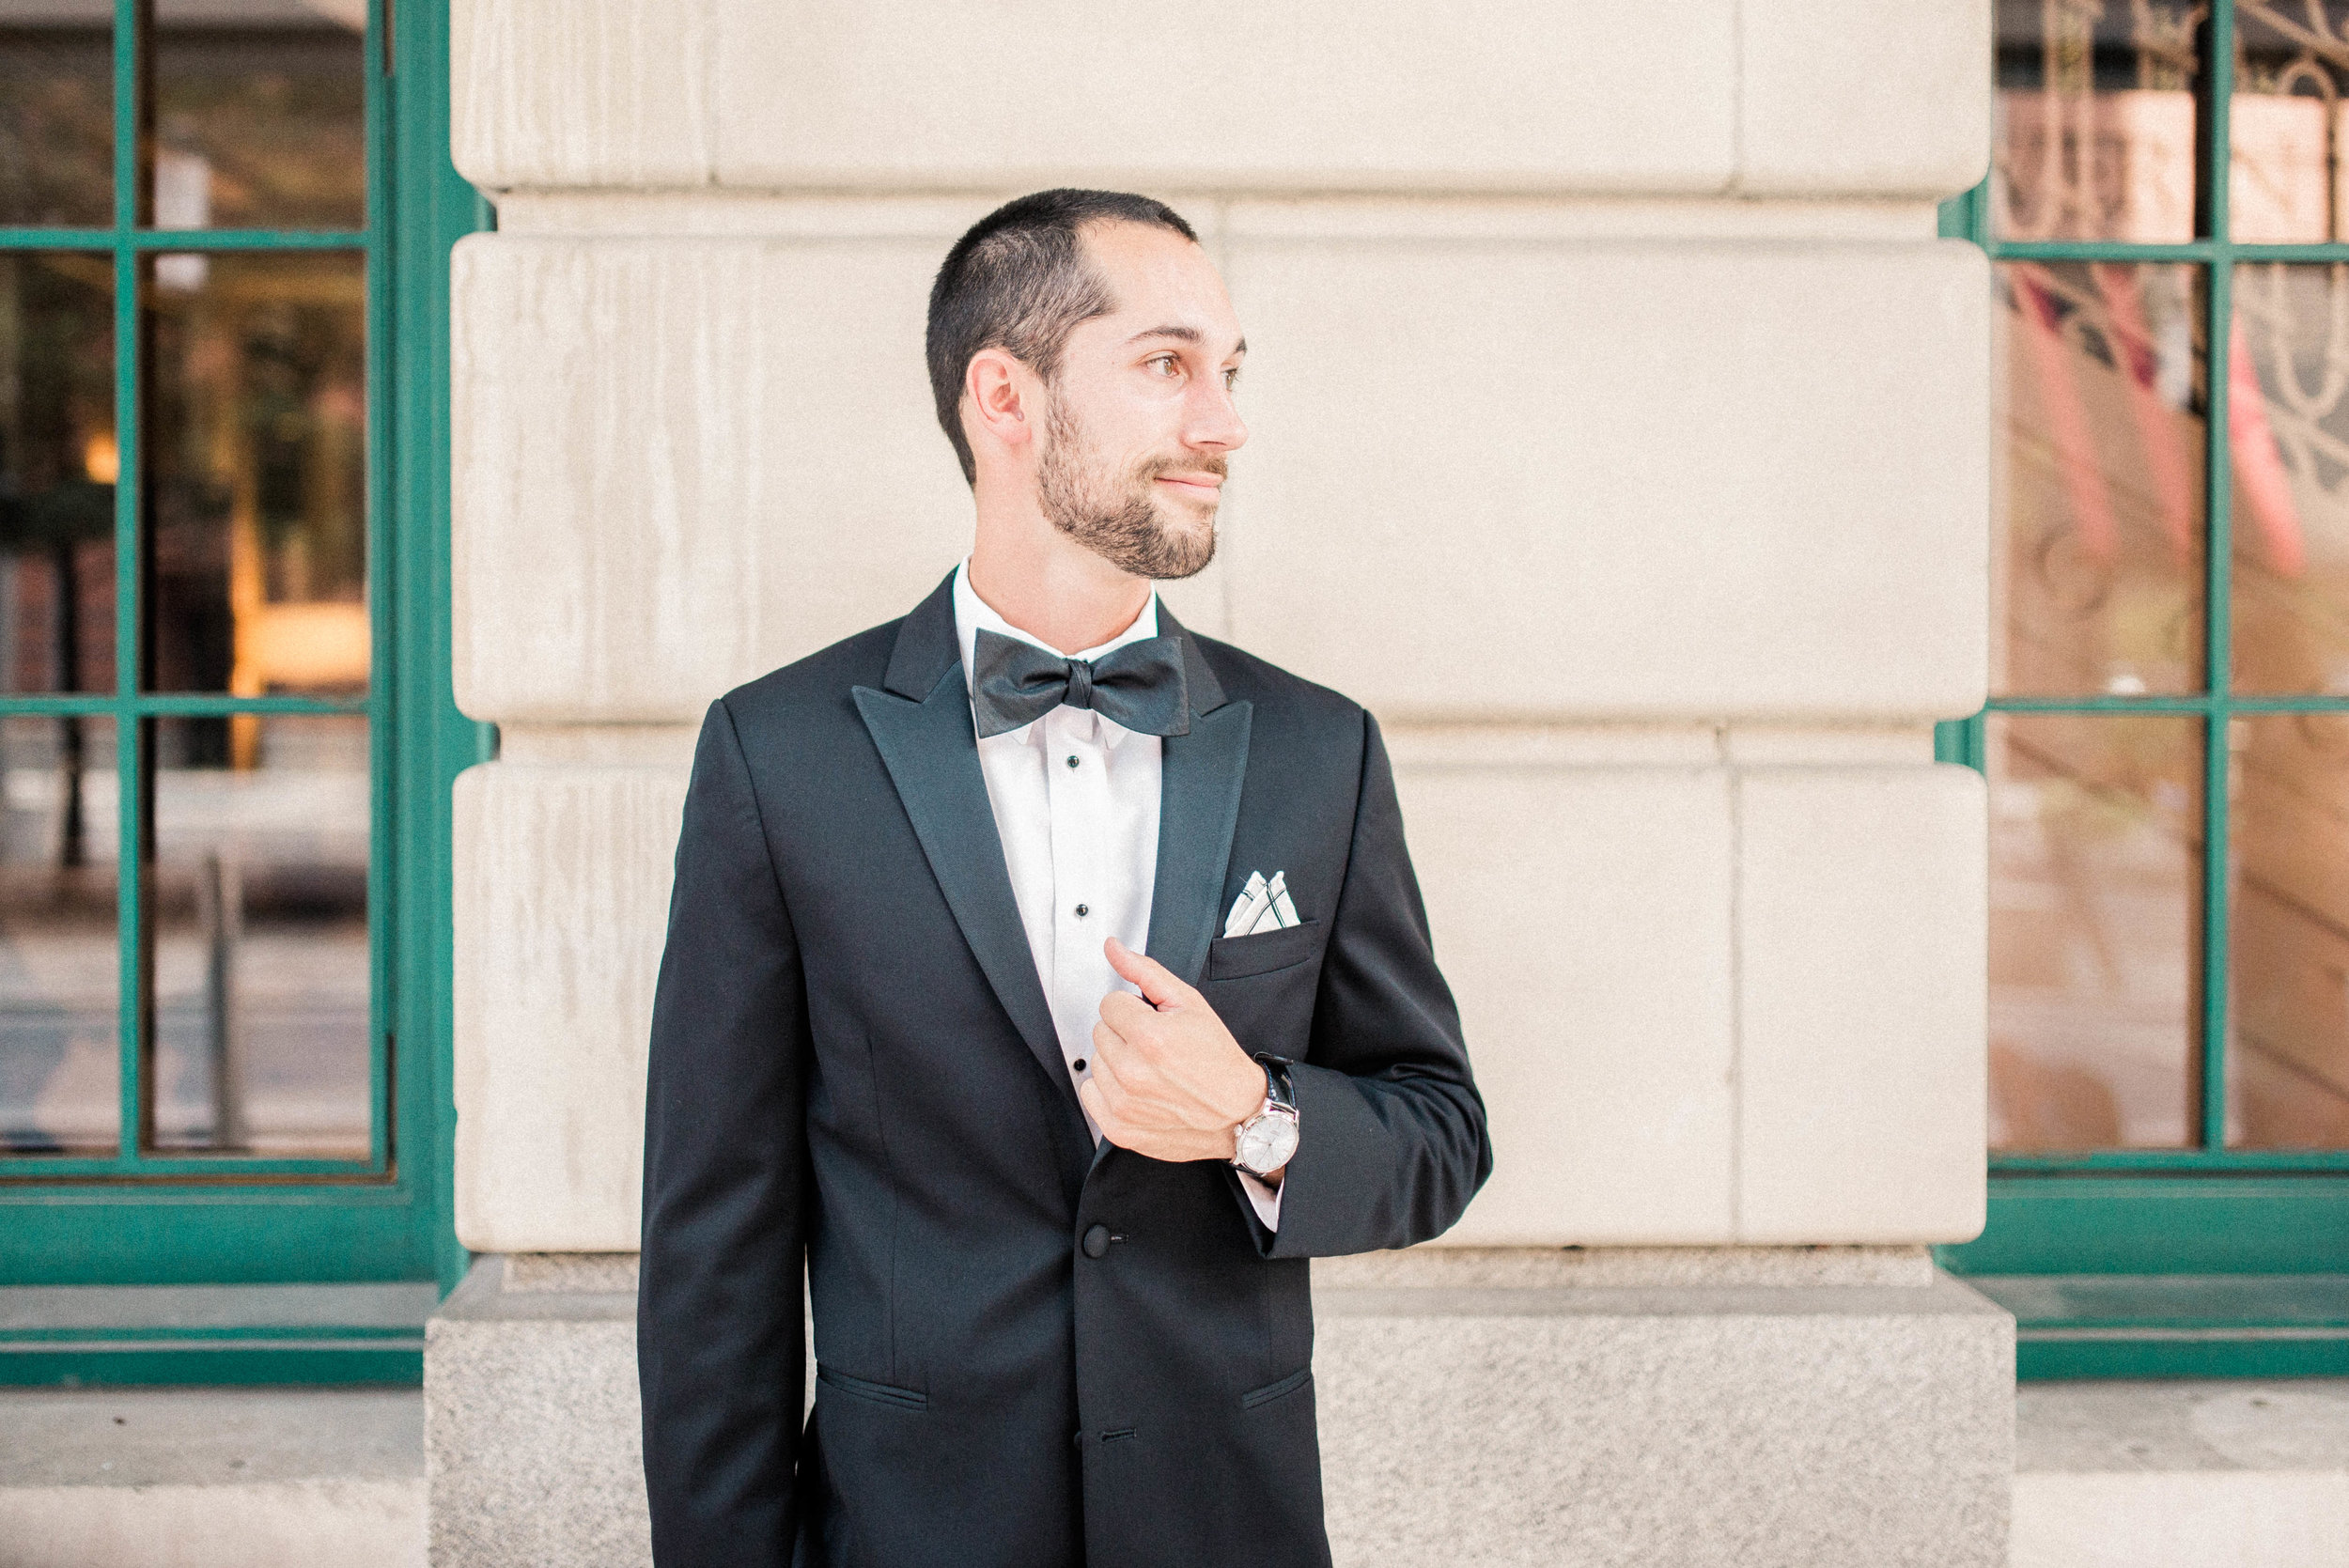 Lyndsey + Drew   A Classic Timeless and Romantic Wedding at the Omni Severin Hotel   International Indianapolis Elopement & Destination Wedding Photographers